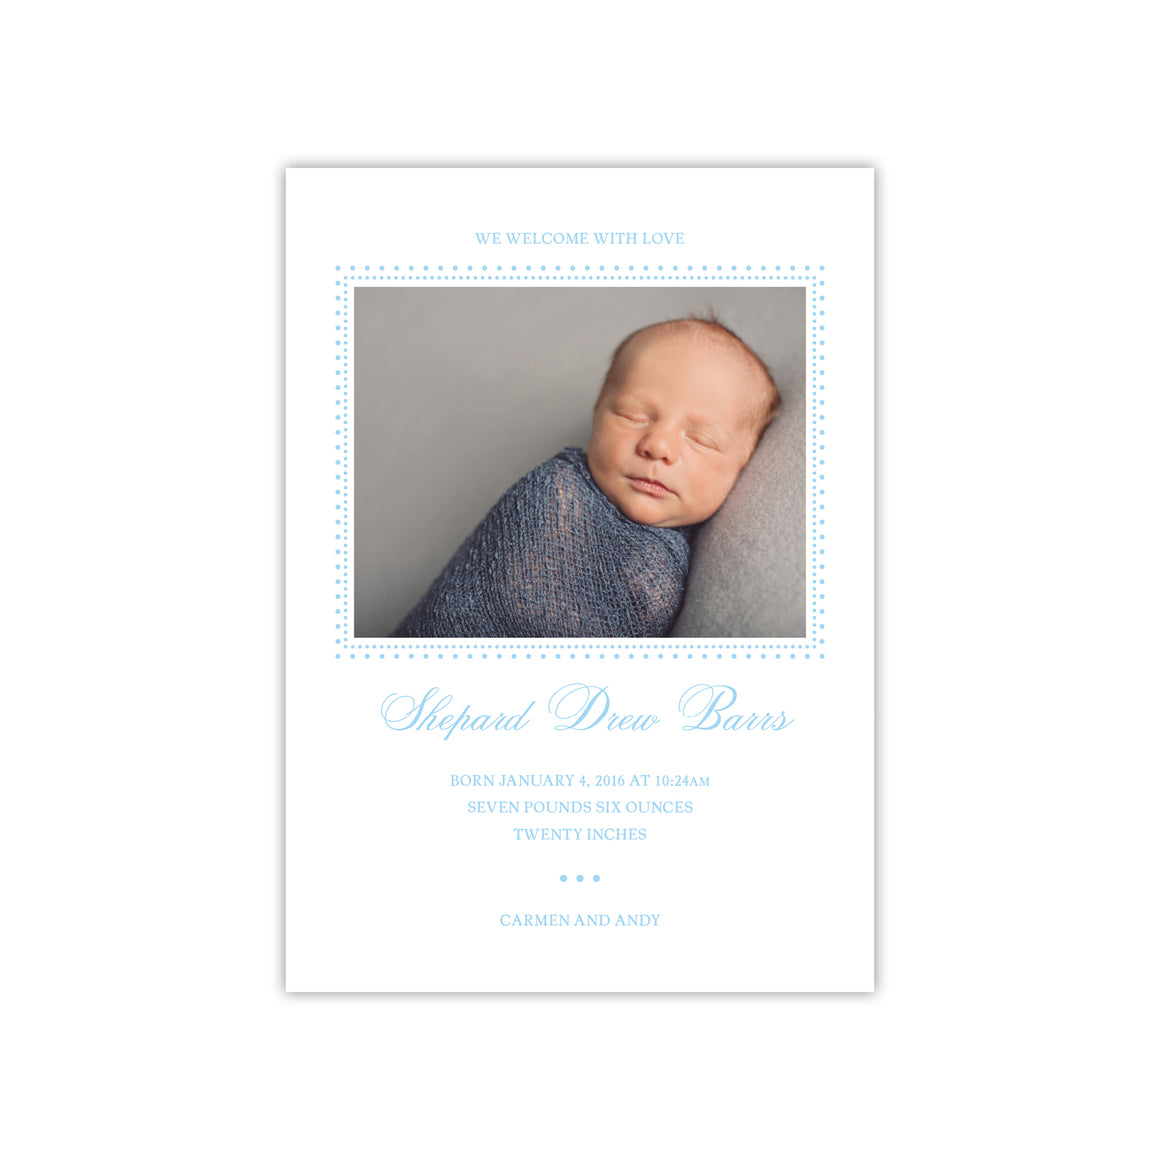 We Welcome with Love Birth Announcement